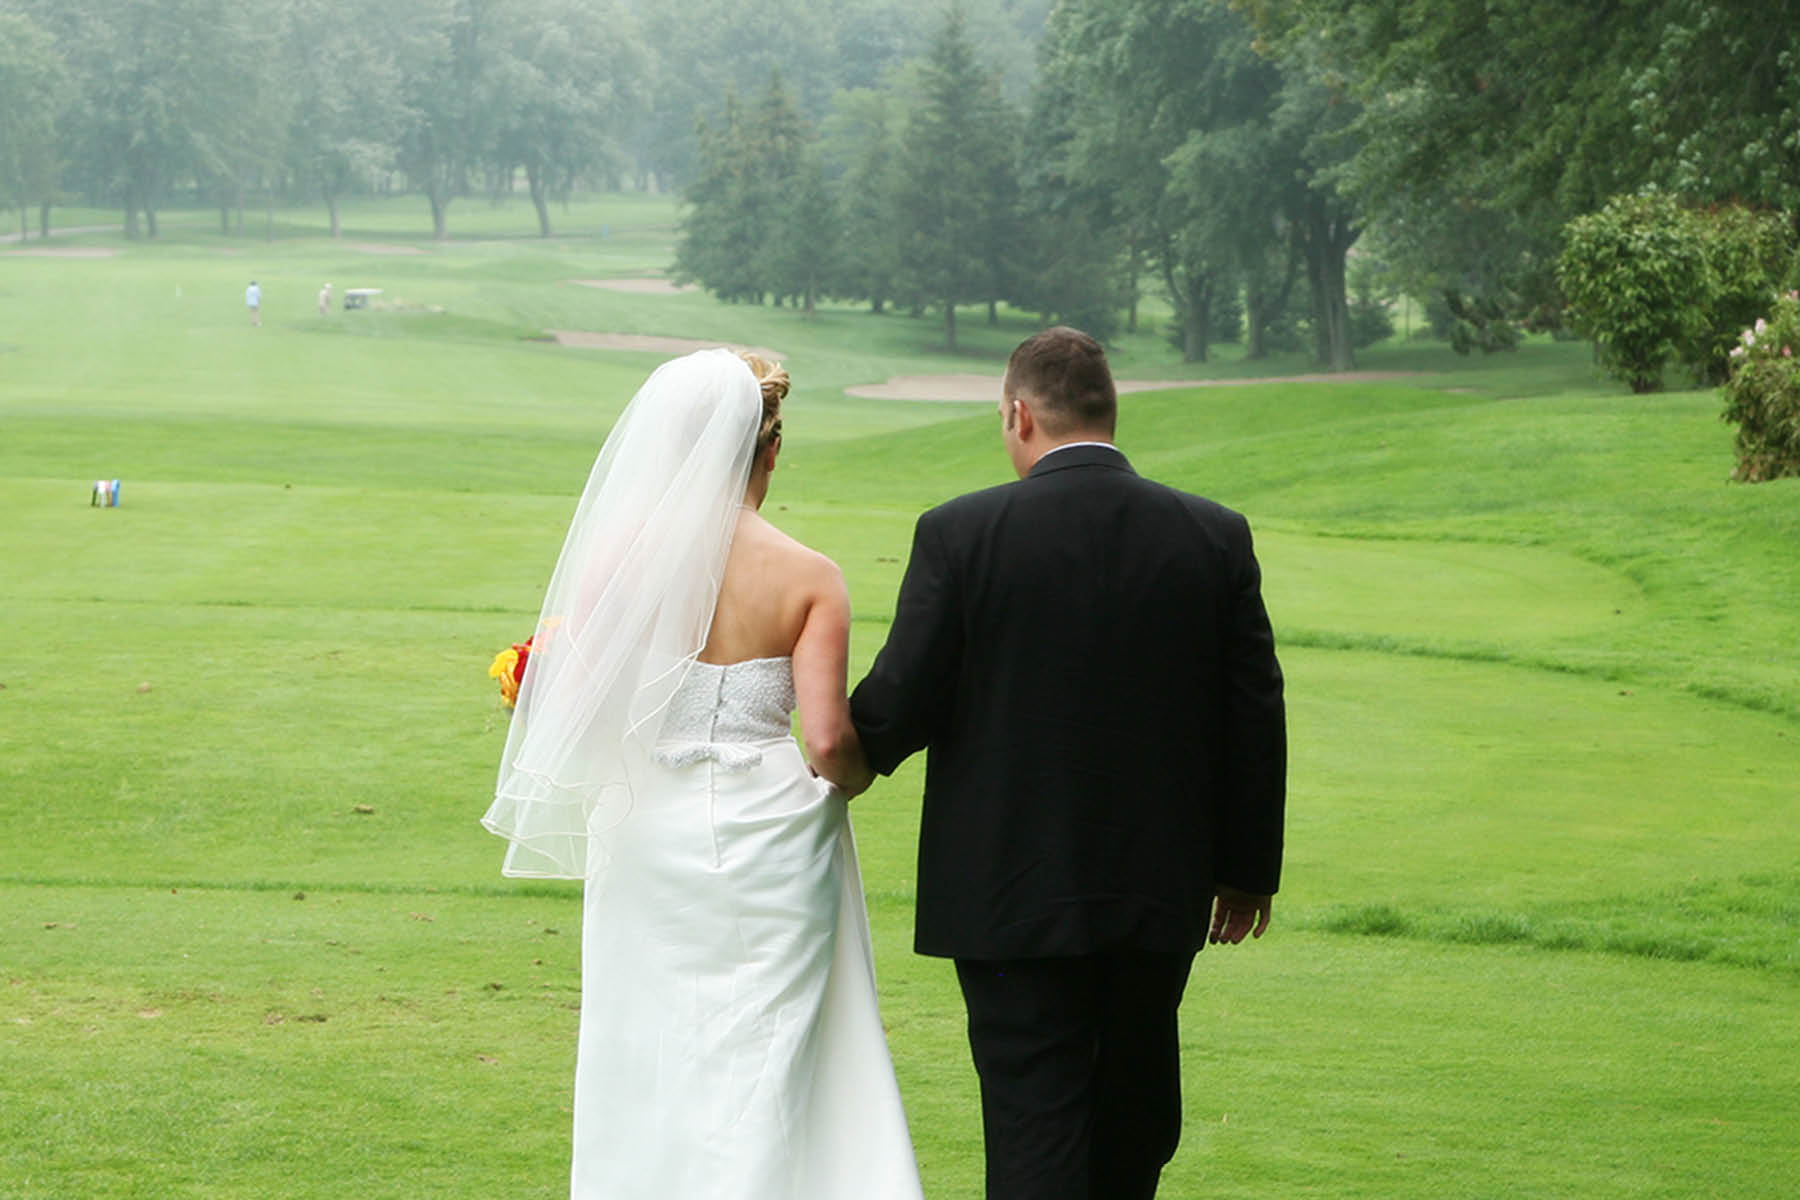 Weddings are our speciality at Wicomico Shores Golf Course